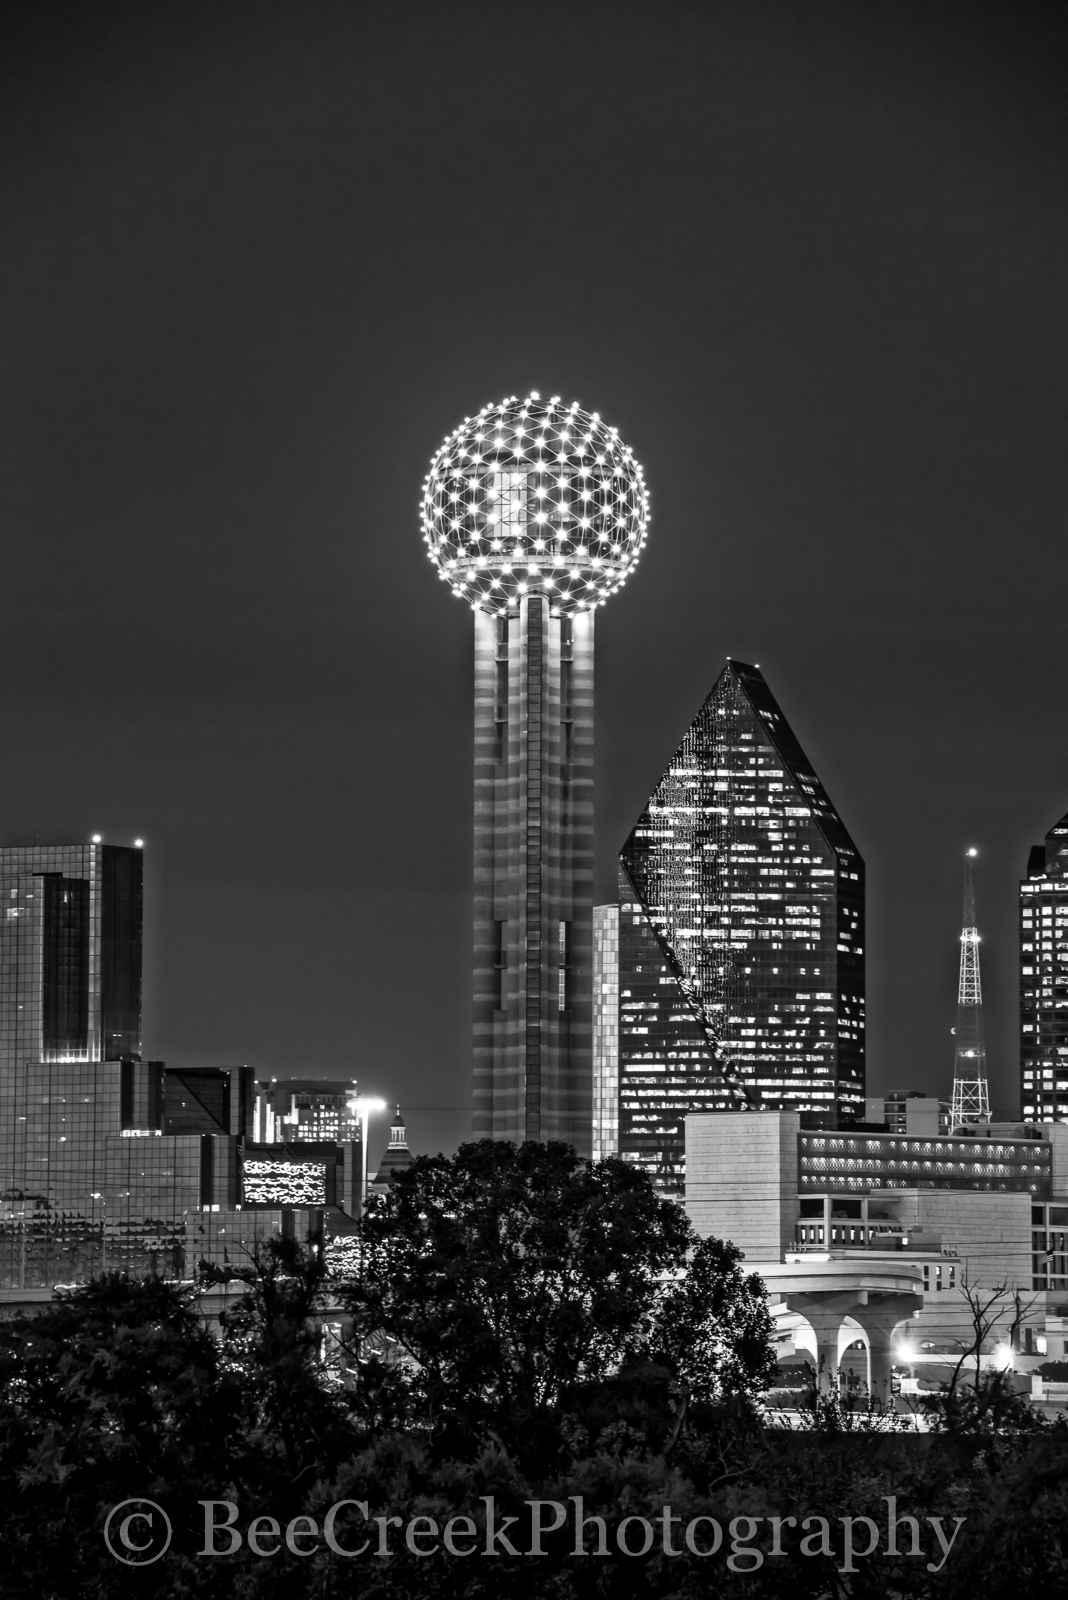 Dallas, Fountain Place, Hyatt Regency, black and white, bw, cityscape, cityscapes, reunion tower, photo